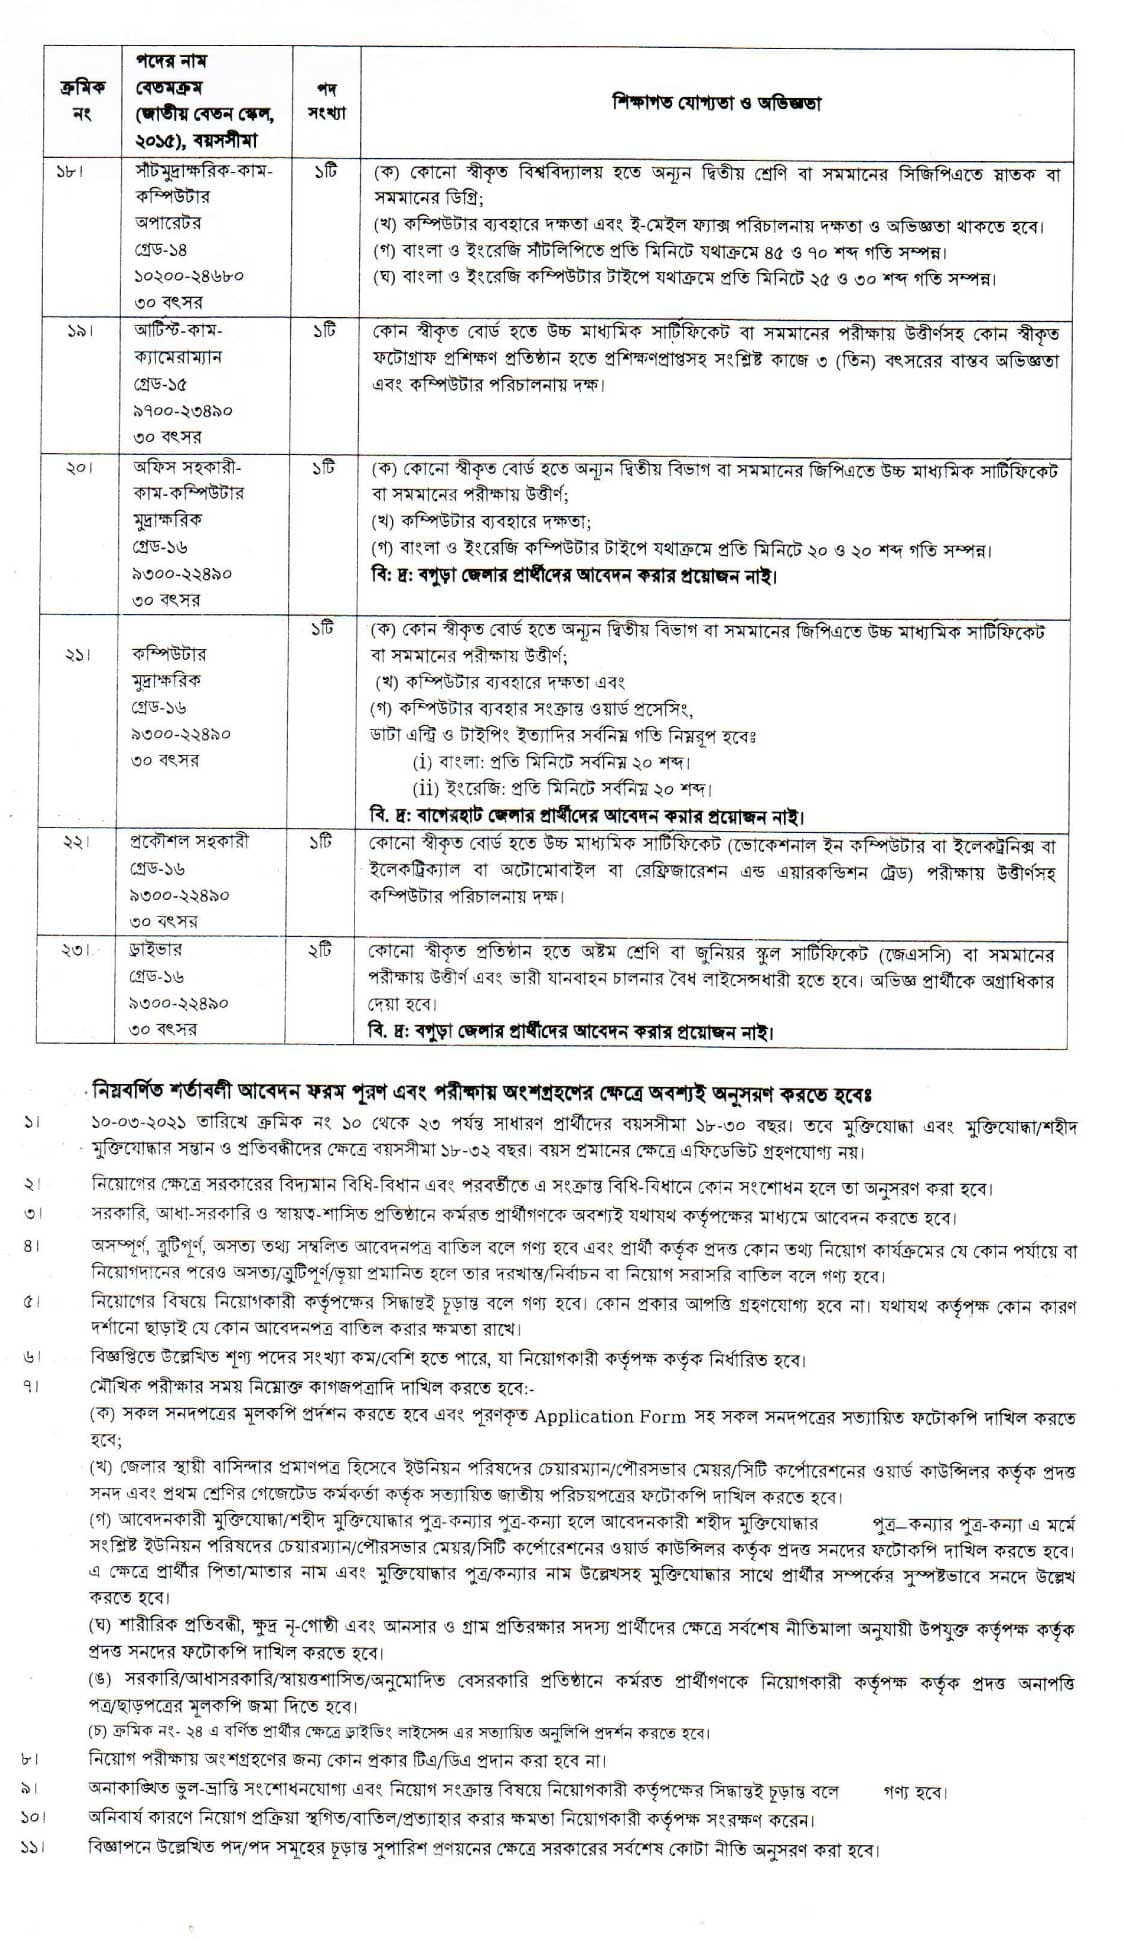 National Computer Training and Research Academy Job Circular 2021